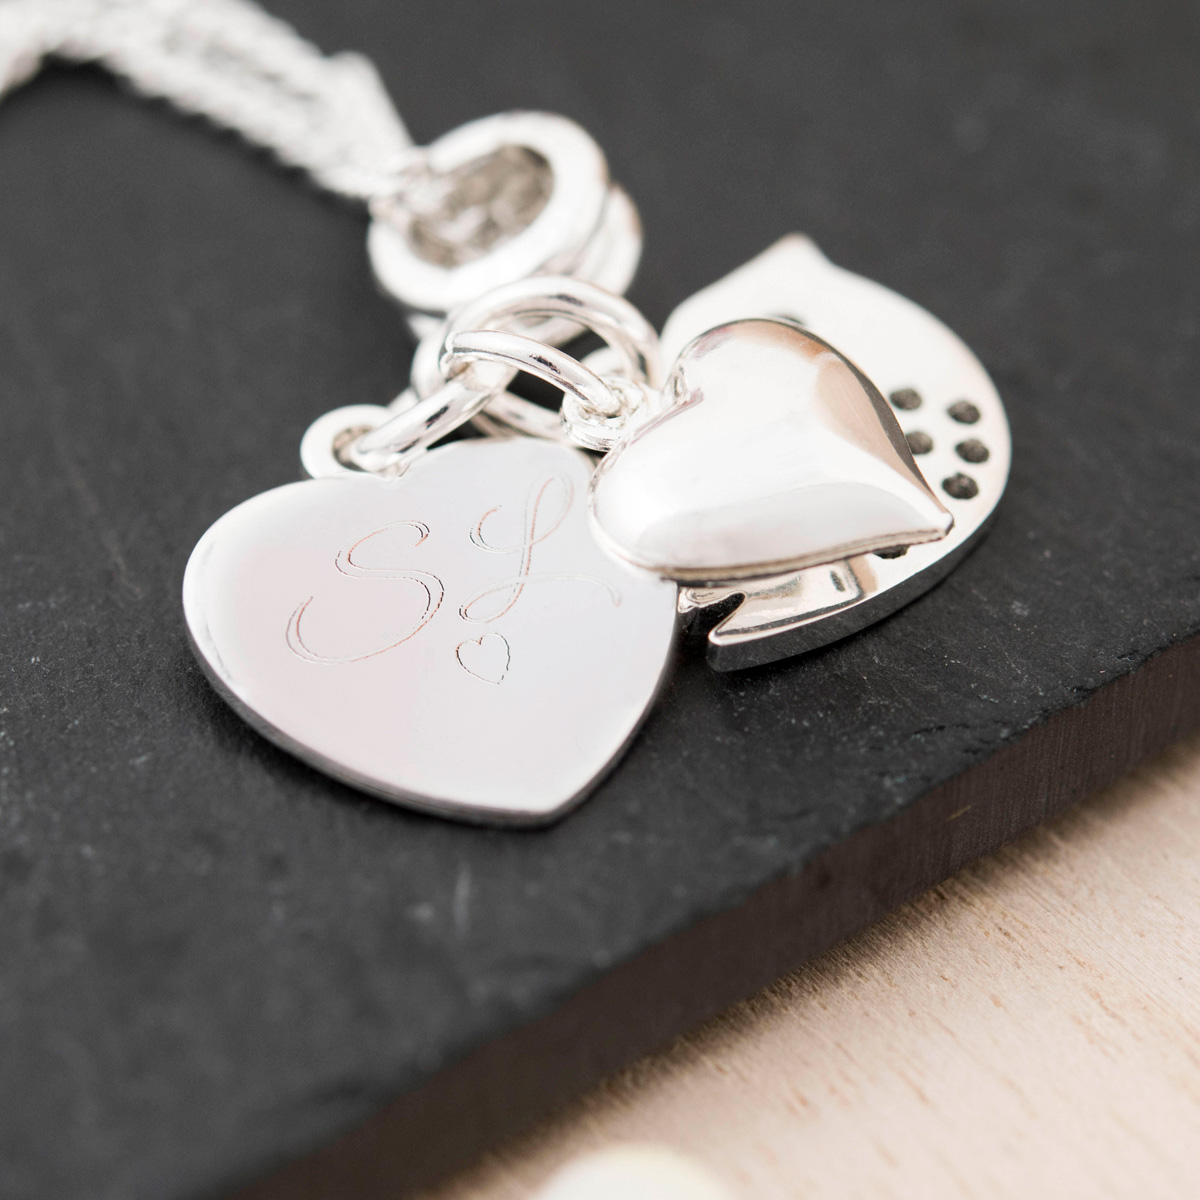 Engraved Heart & Bird Charm Necklace  Initials